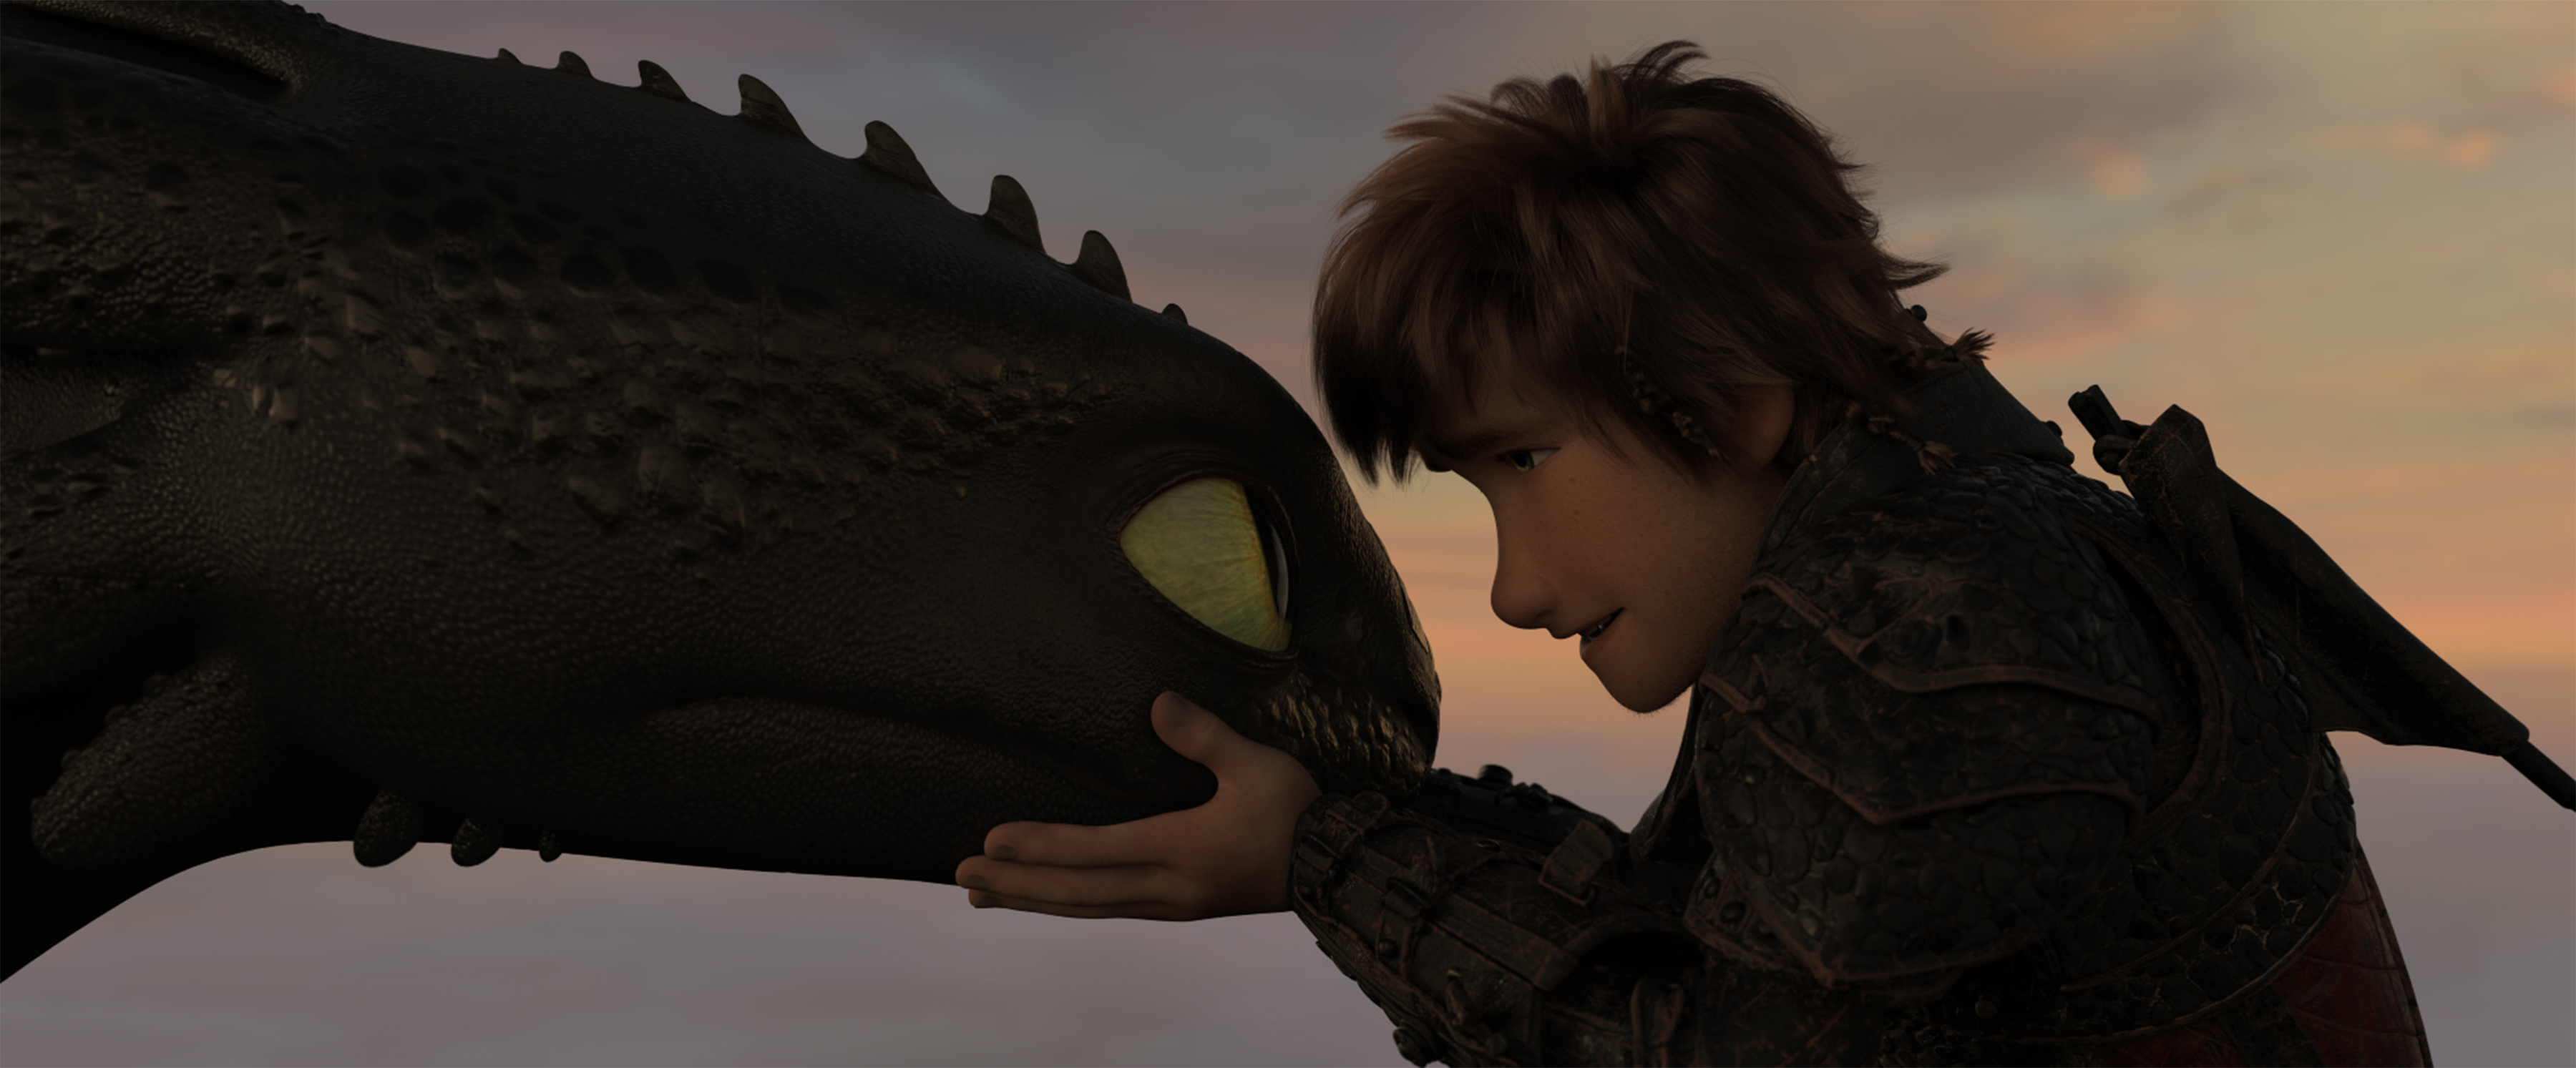 How to Train Your Dragon 3 review: a beautiful, bittersweet finale